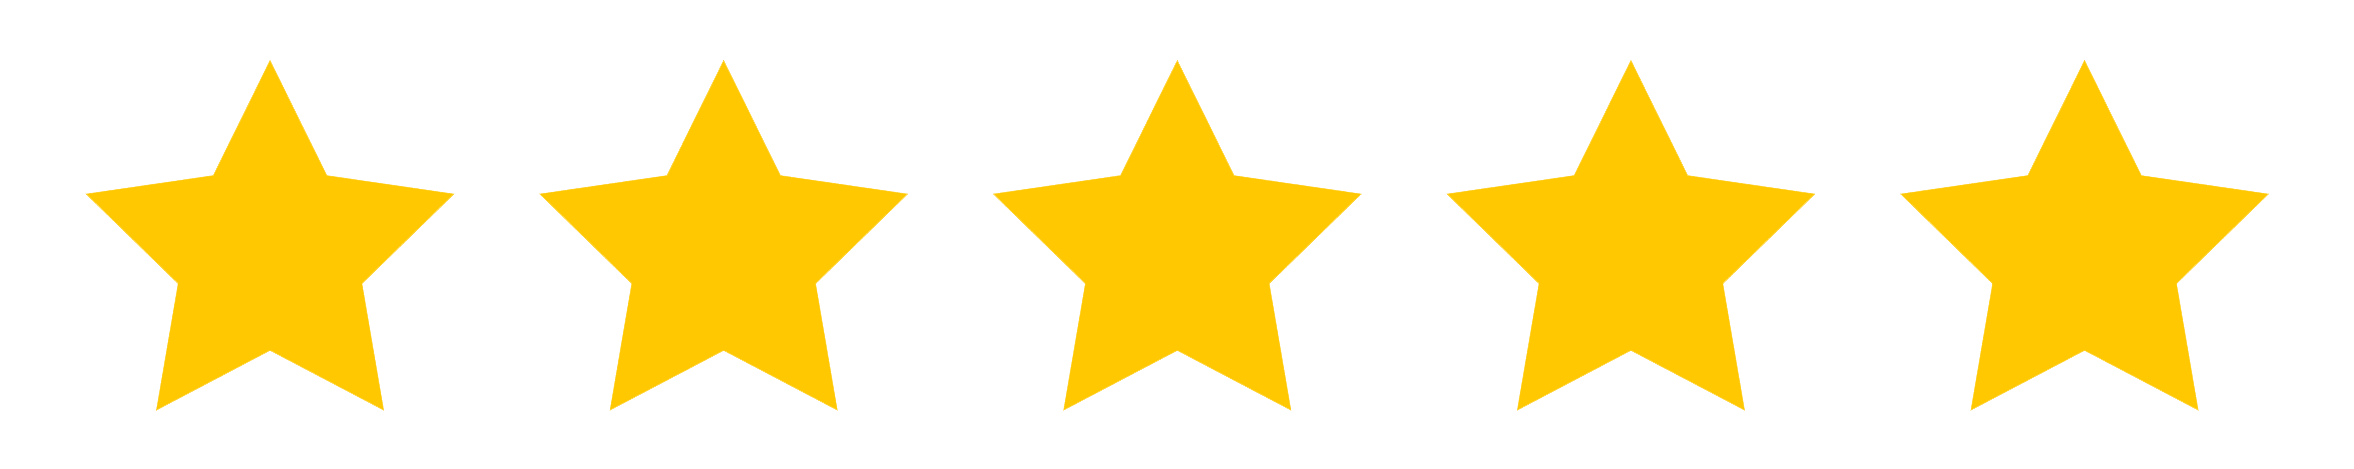 Reviews star rating from Diane C. for A-1 Self Storage in Huntington Beach, California